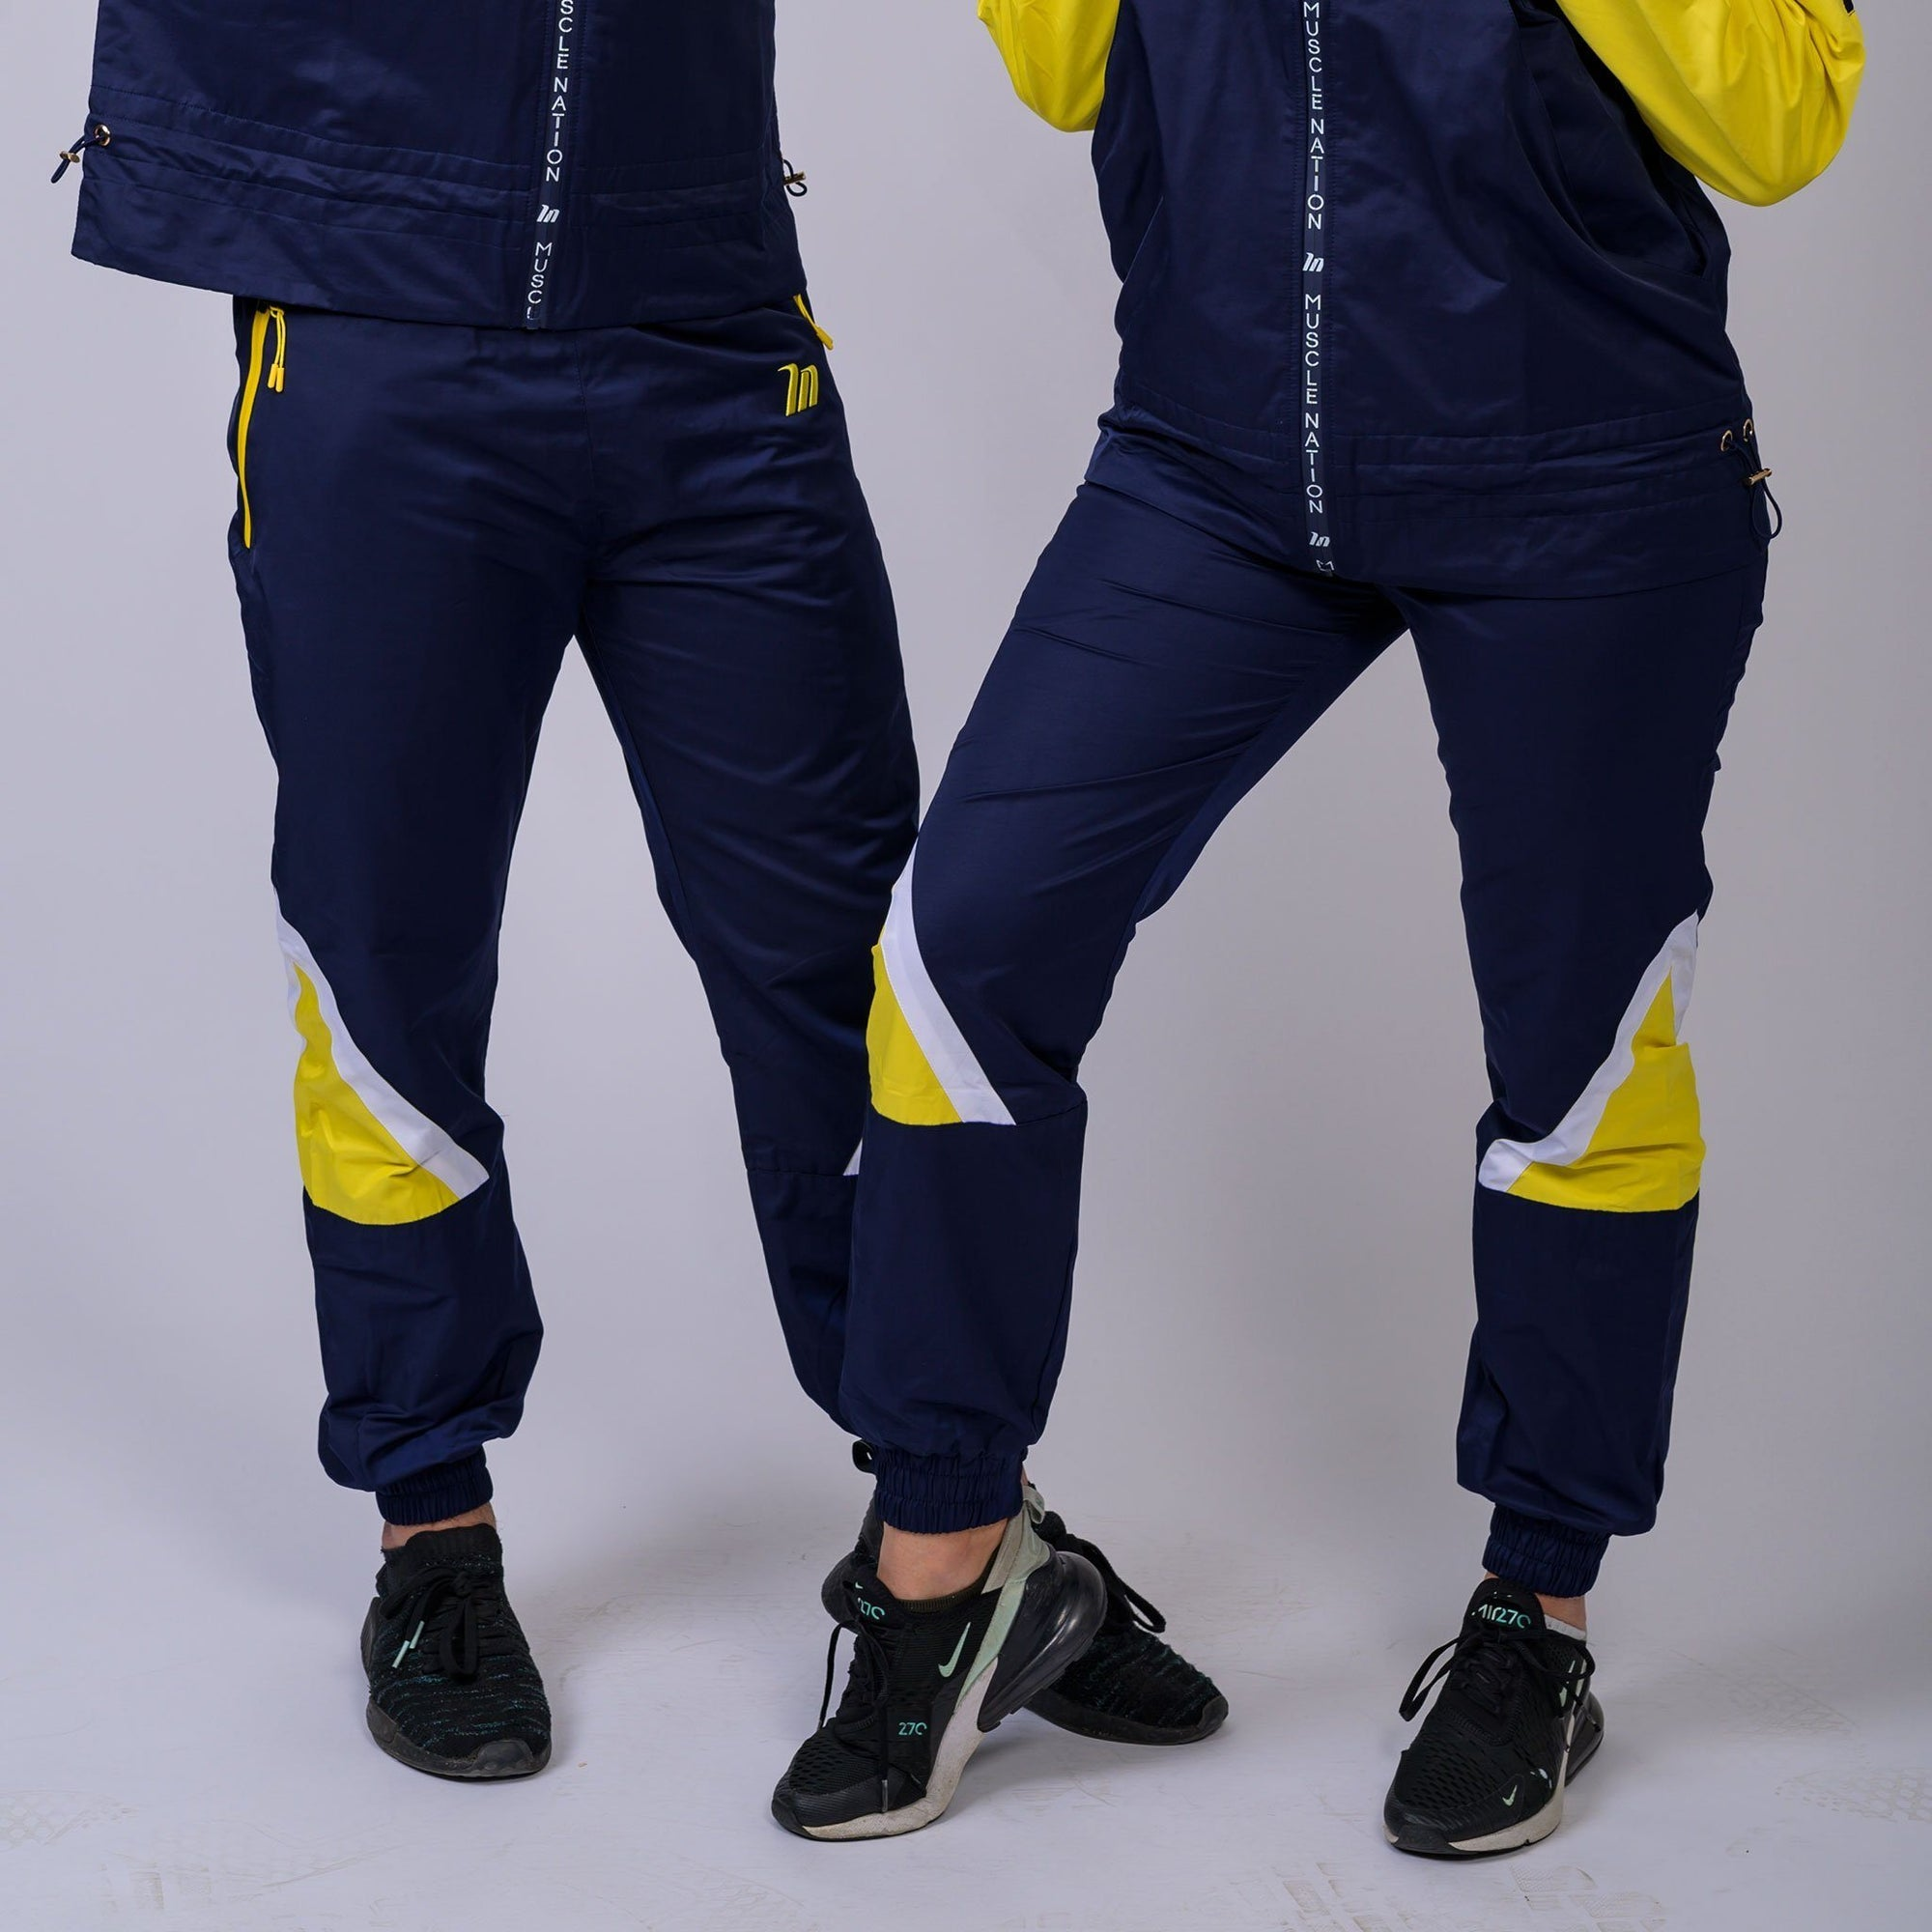 Muscle Nation Unisex Retro Tracksuit Pants - Navy/Yellow